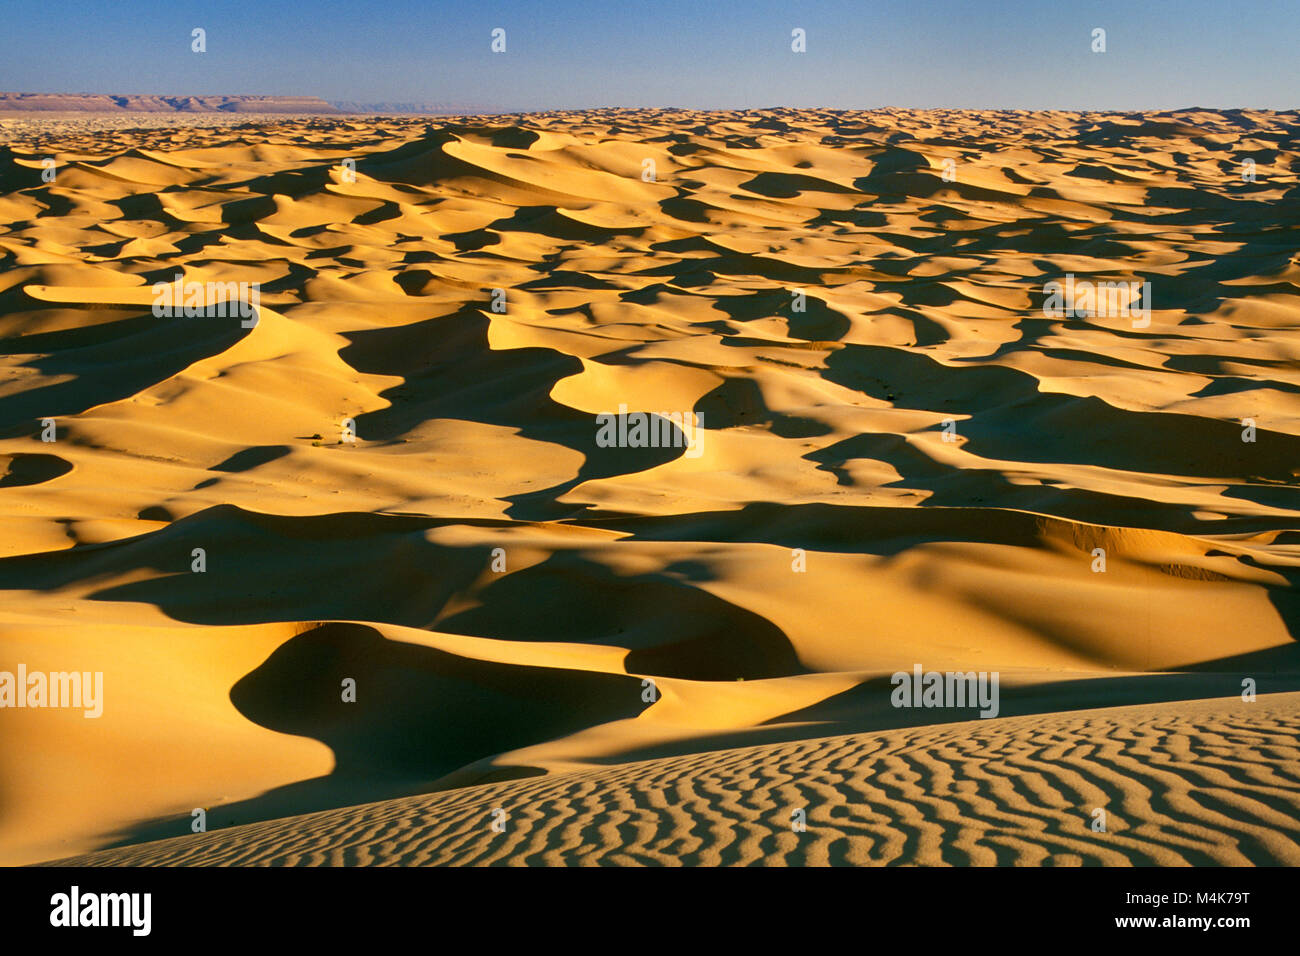 Algeria. Taghit or Tarit. Western Sand Sea. Grand Erg Occidental. Sahara desert. Panoramic view of Sand Dunes and - Stock Image